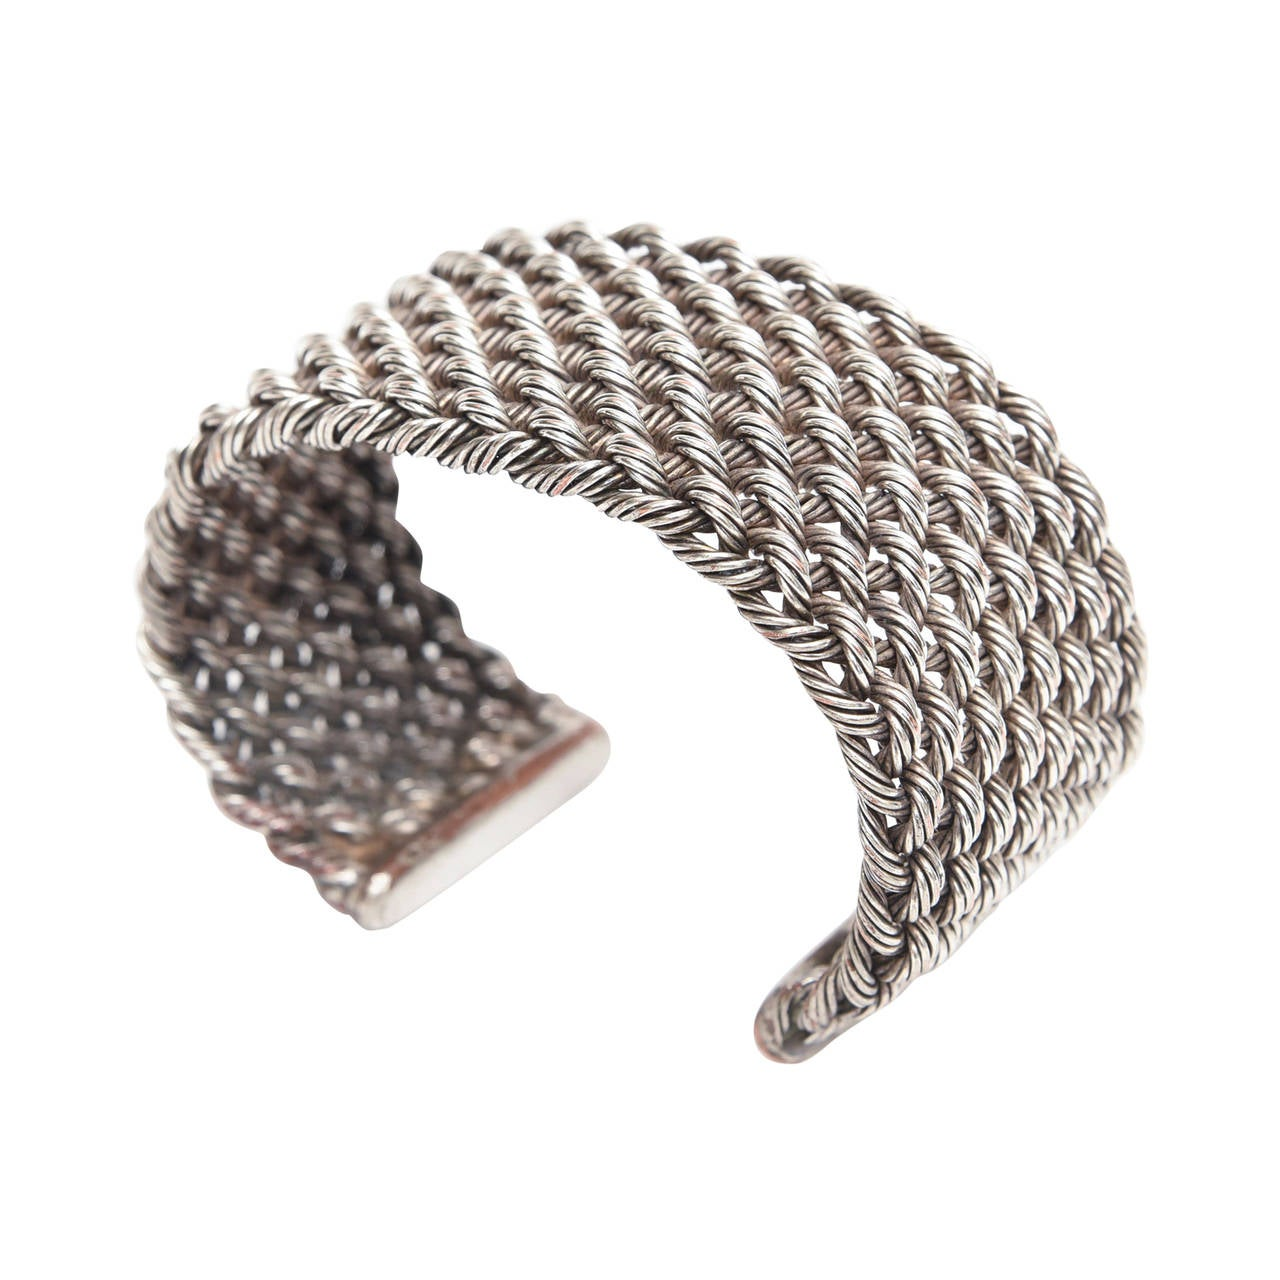 Criss Cross Braided Sterling Silver Cuff Bracelet For